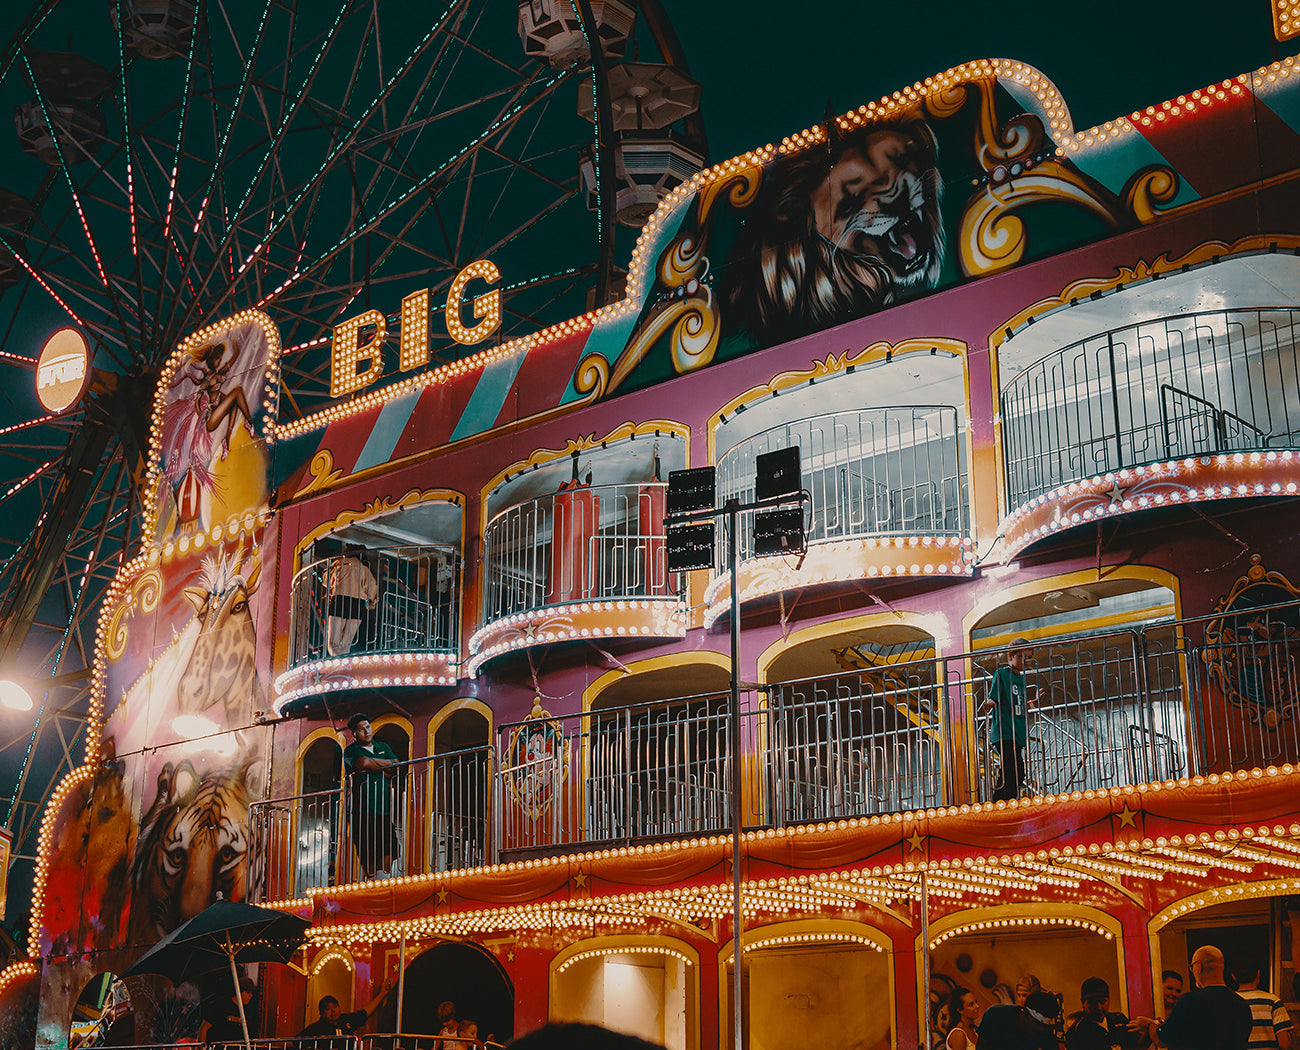 Funhouse lit up at night